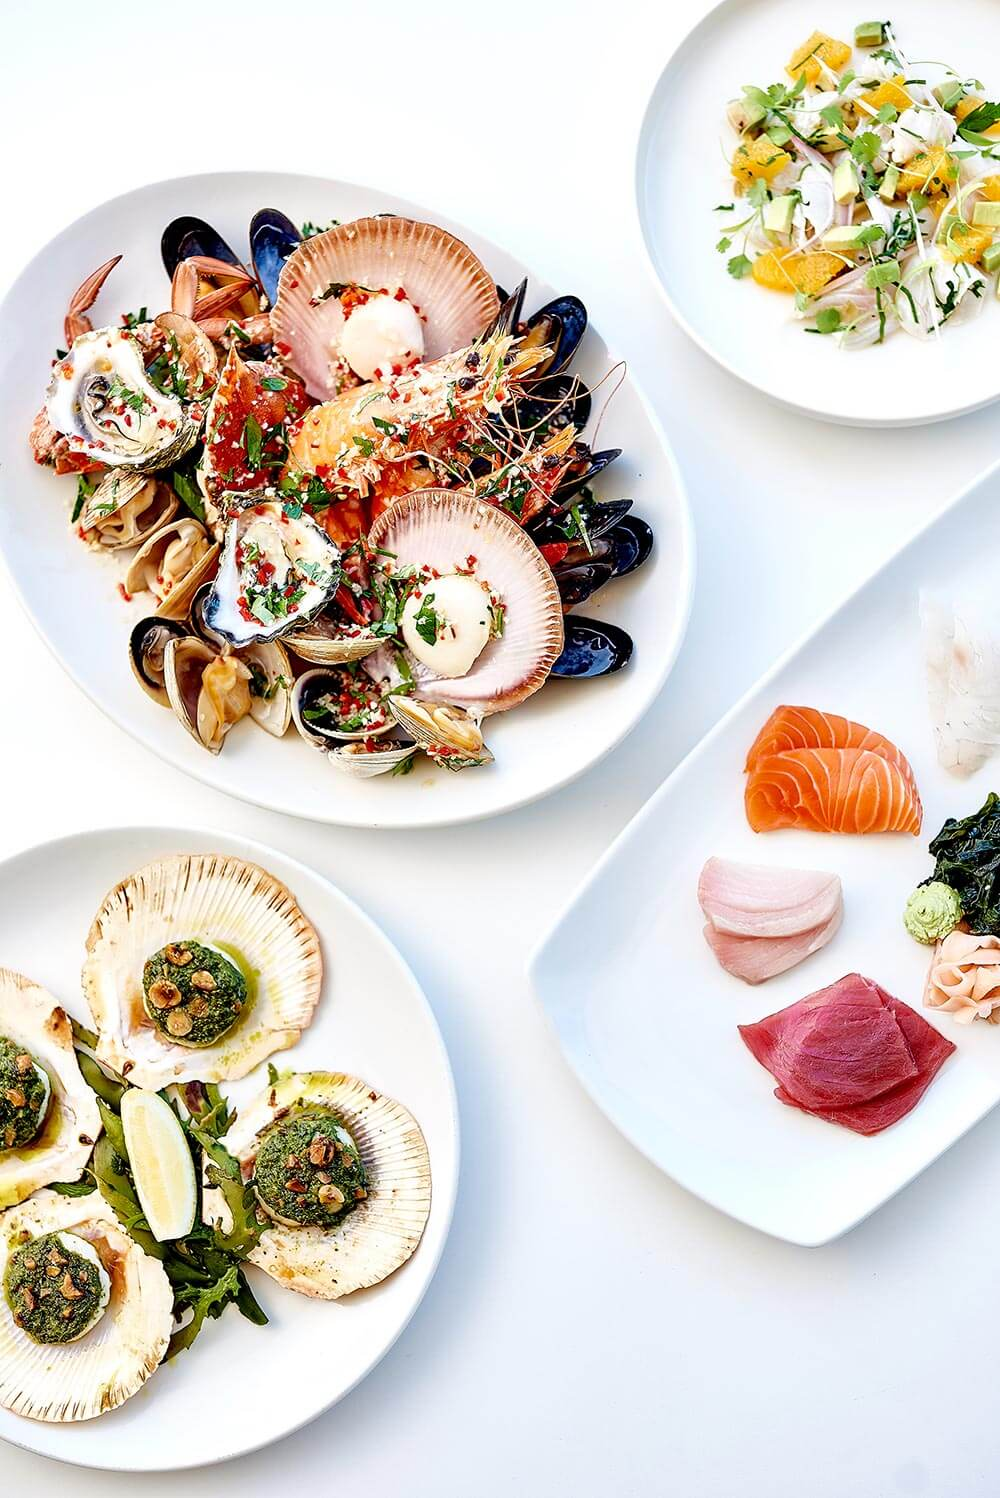 Food experience at Bannisters Port Stephens